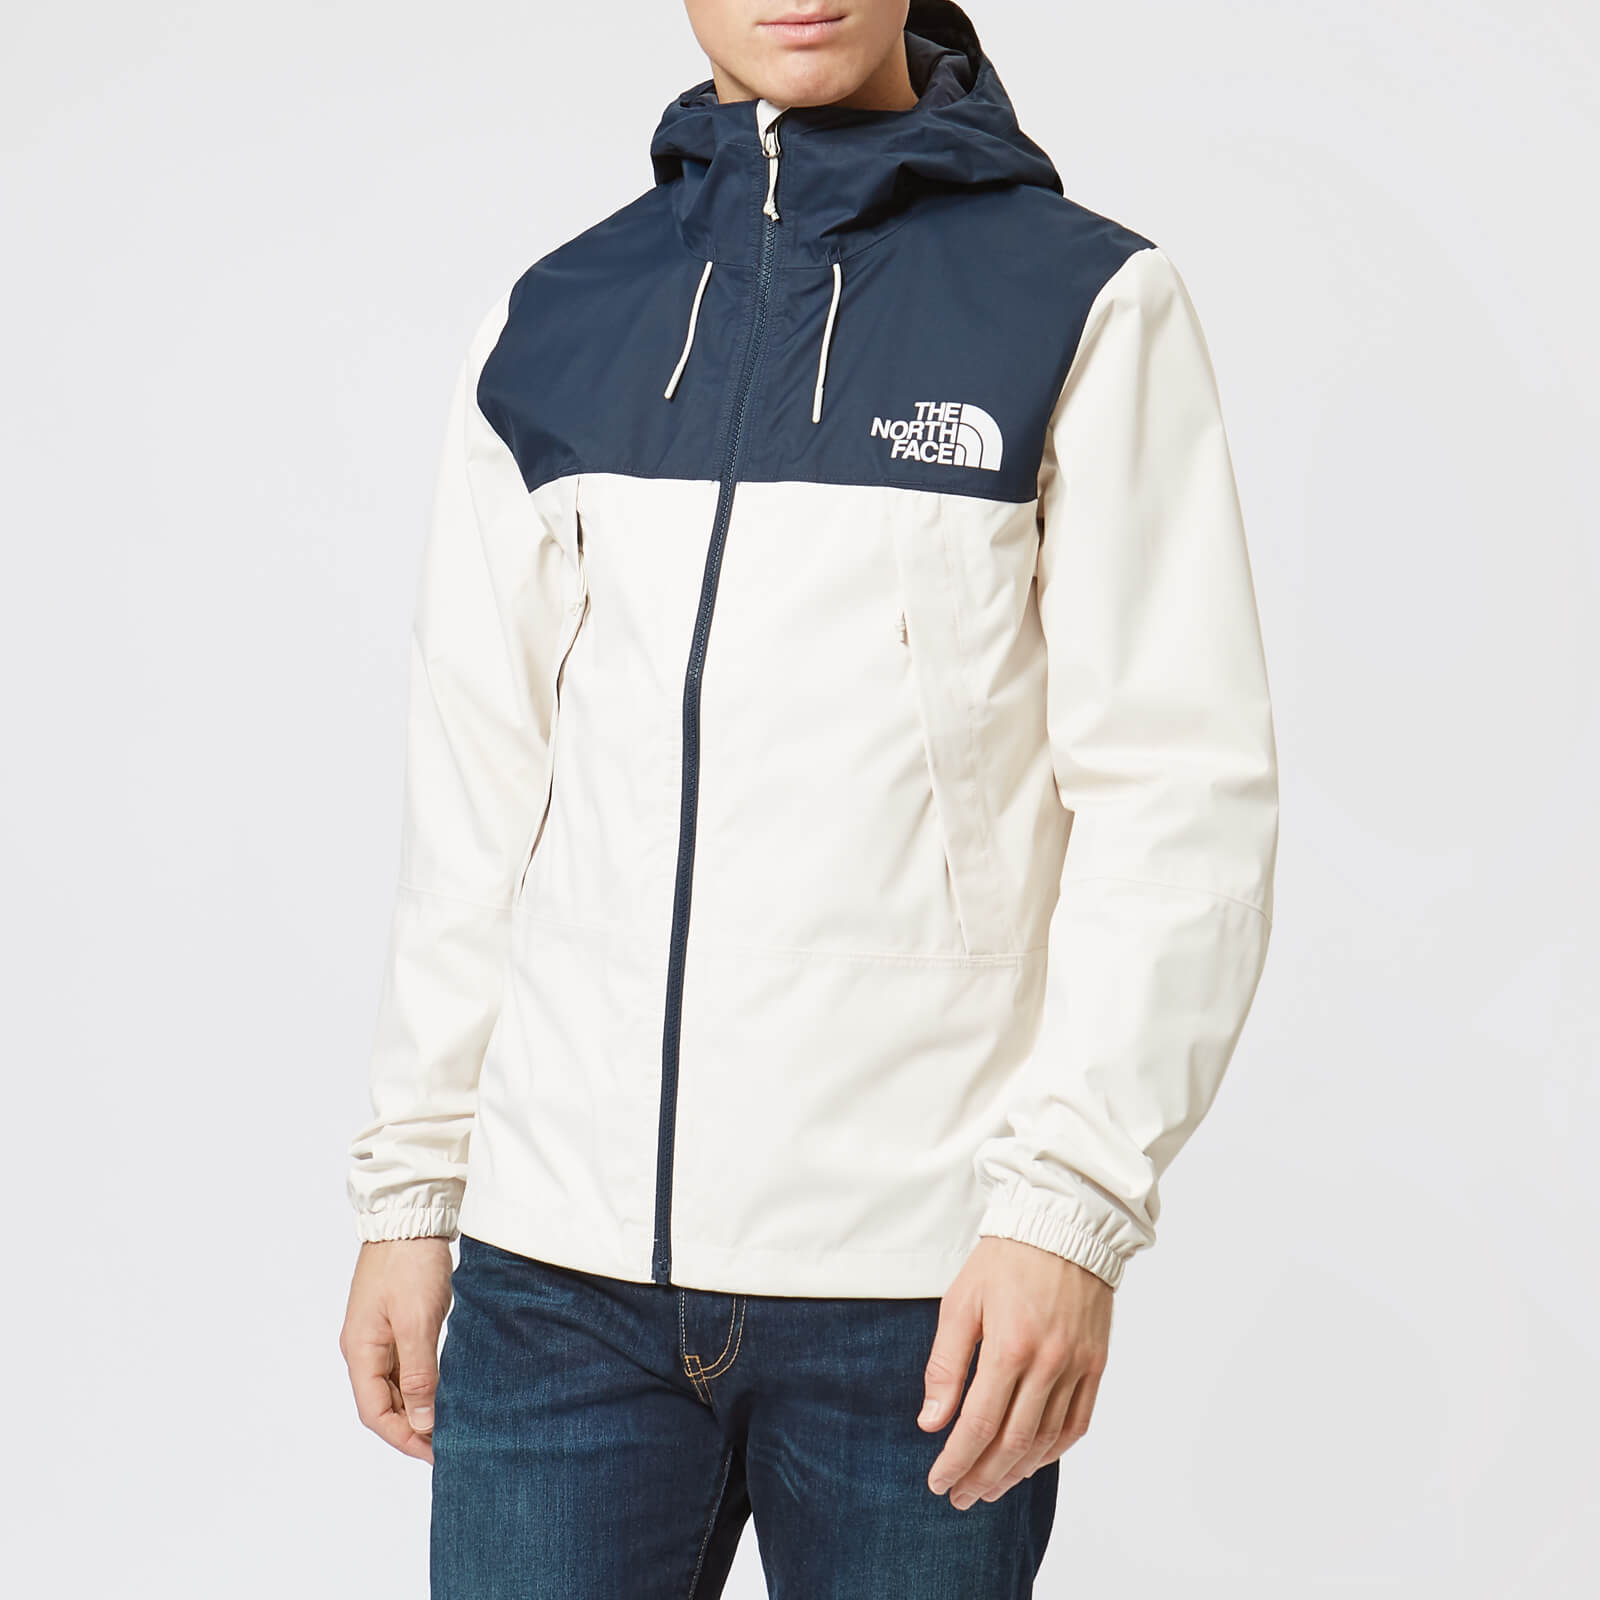 The North Face Men's 1990 Mountain Q Jacket Vintage WhiteUrban Navy